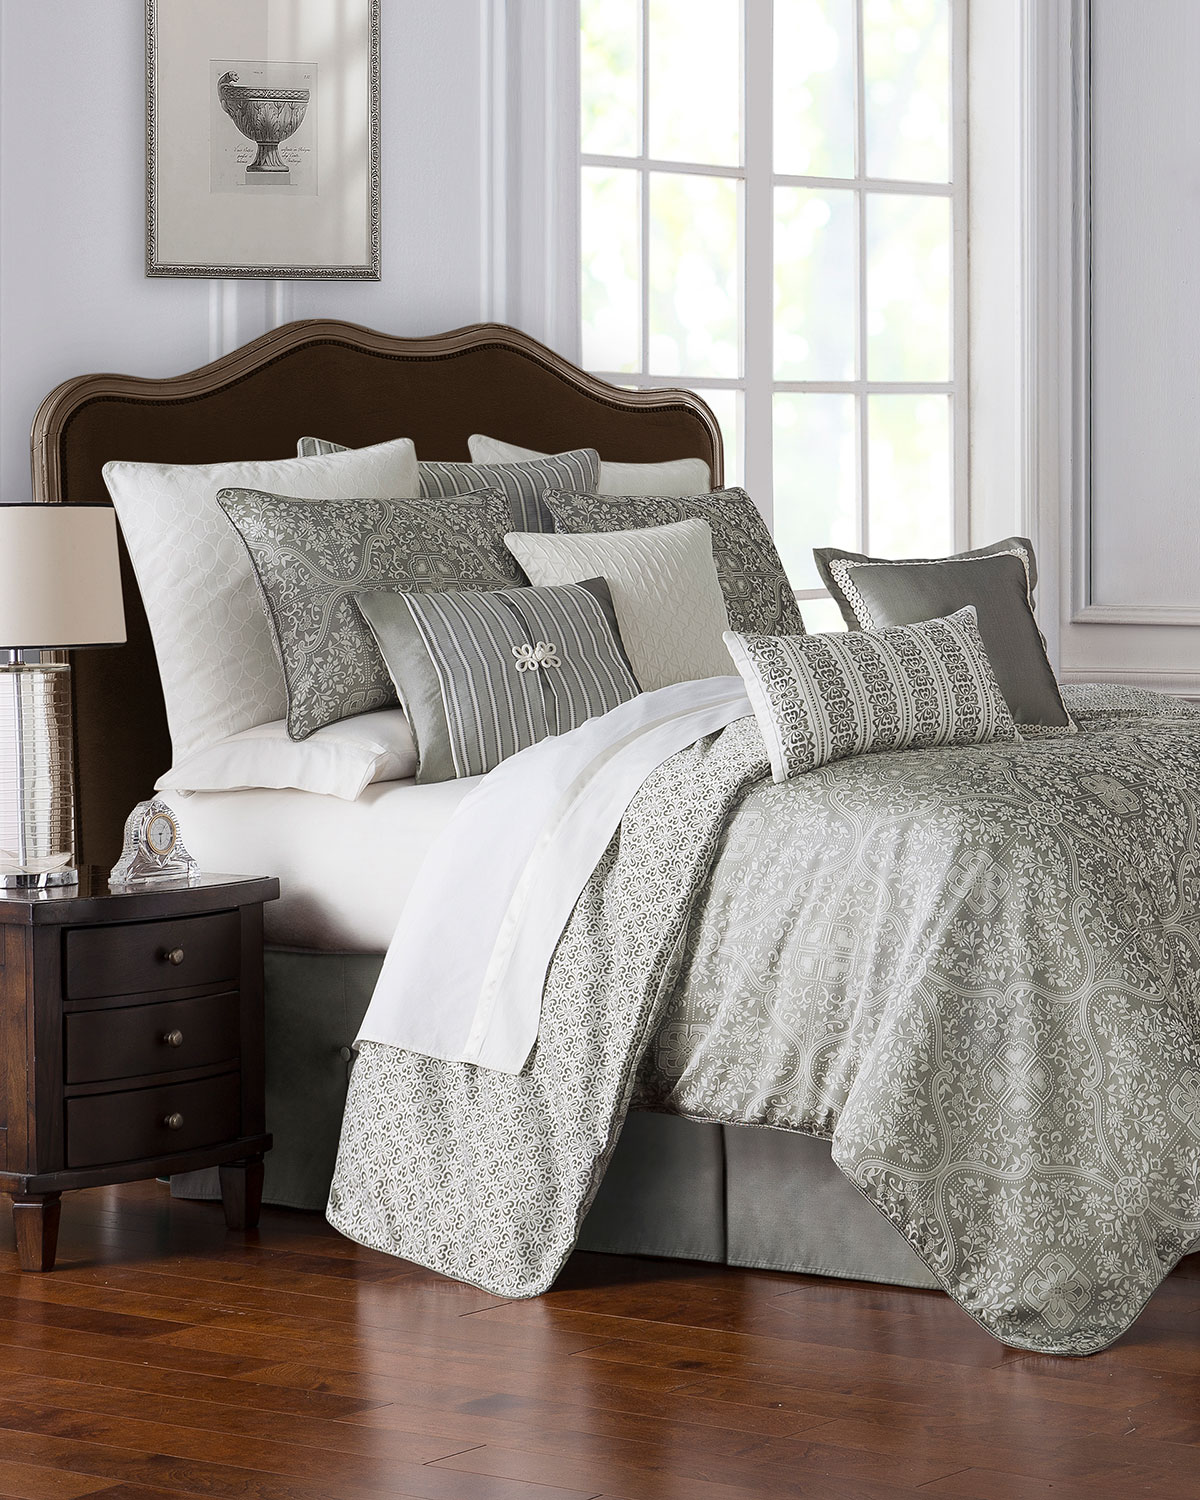 Wedding Gift Stores Nyc: Waterford Celine Queen Comforter Set